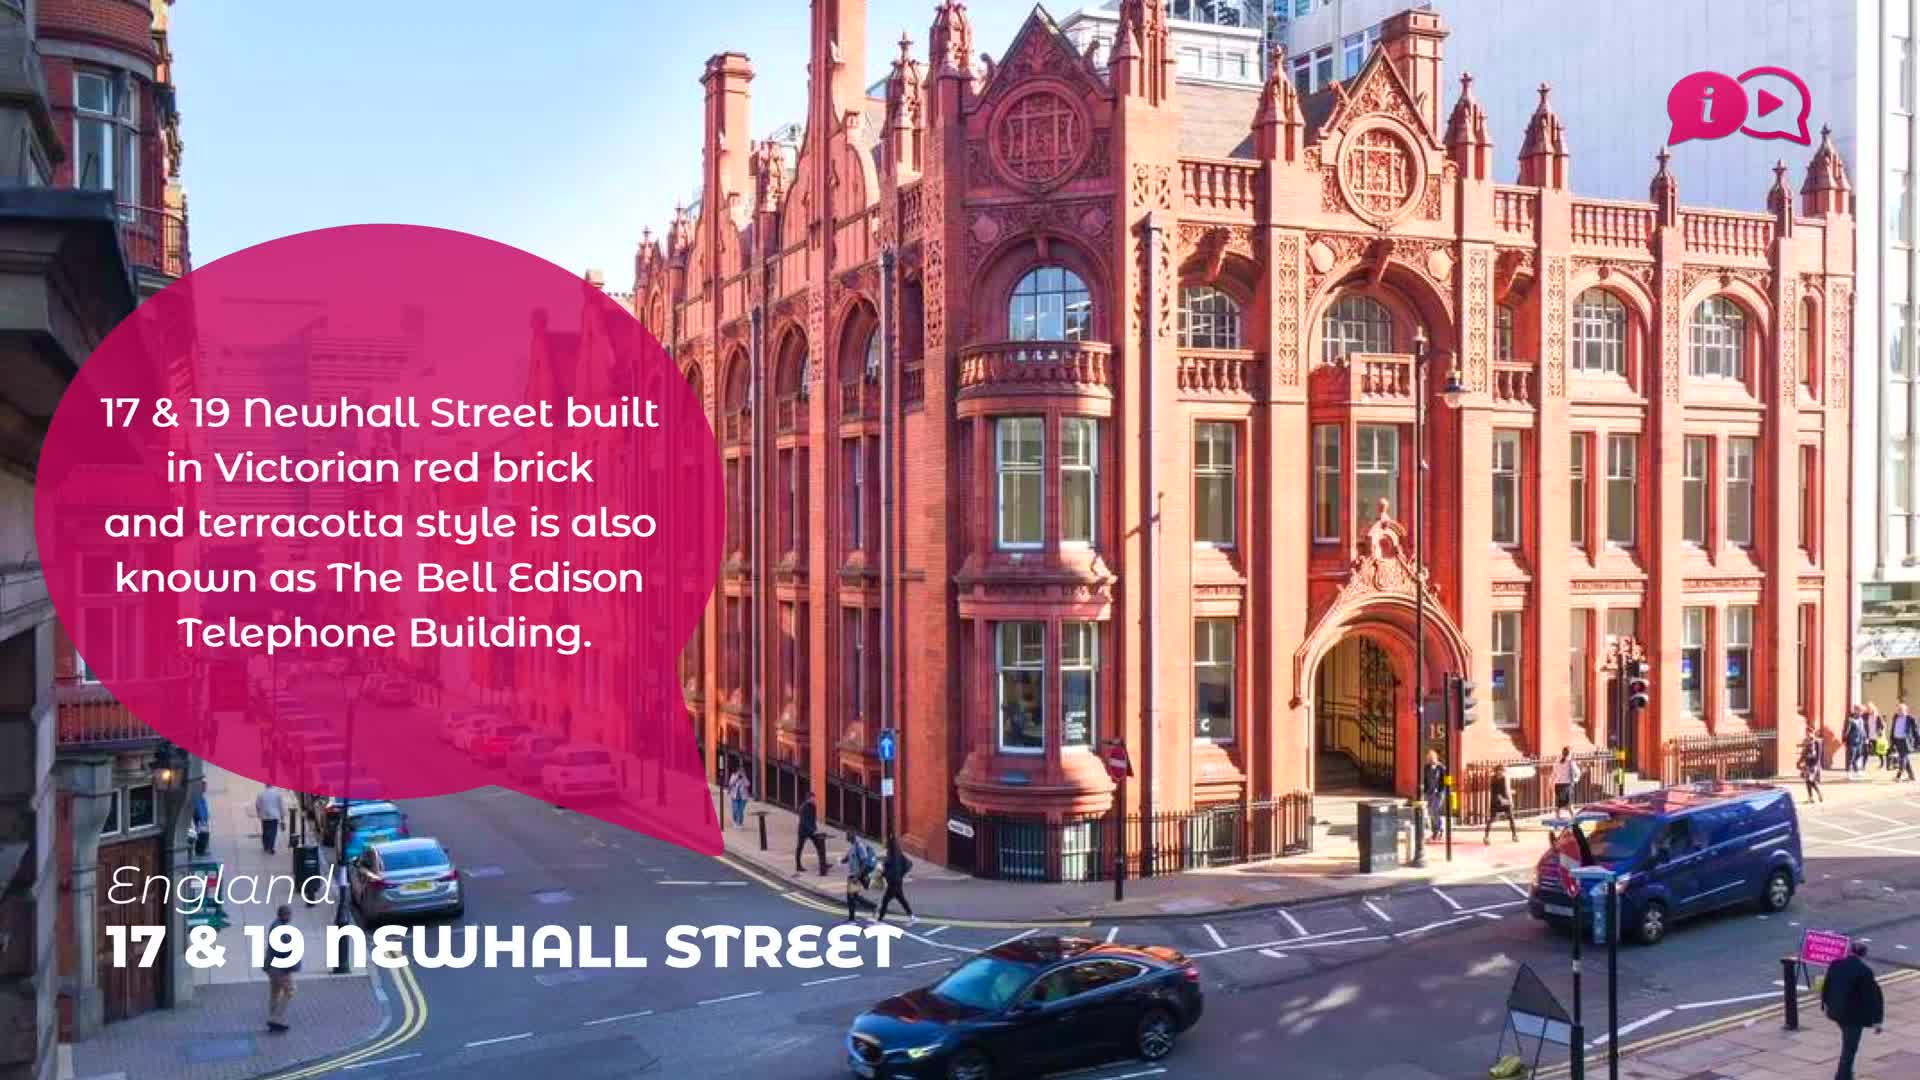 17 & 19 NEWHALL STREET